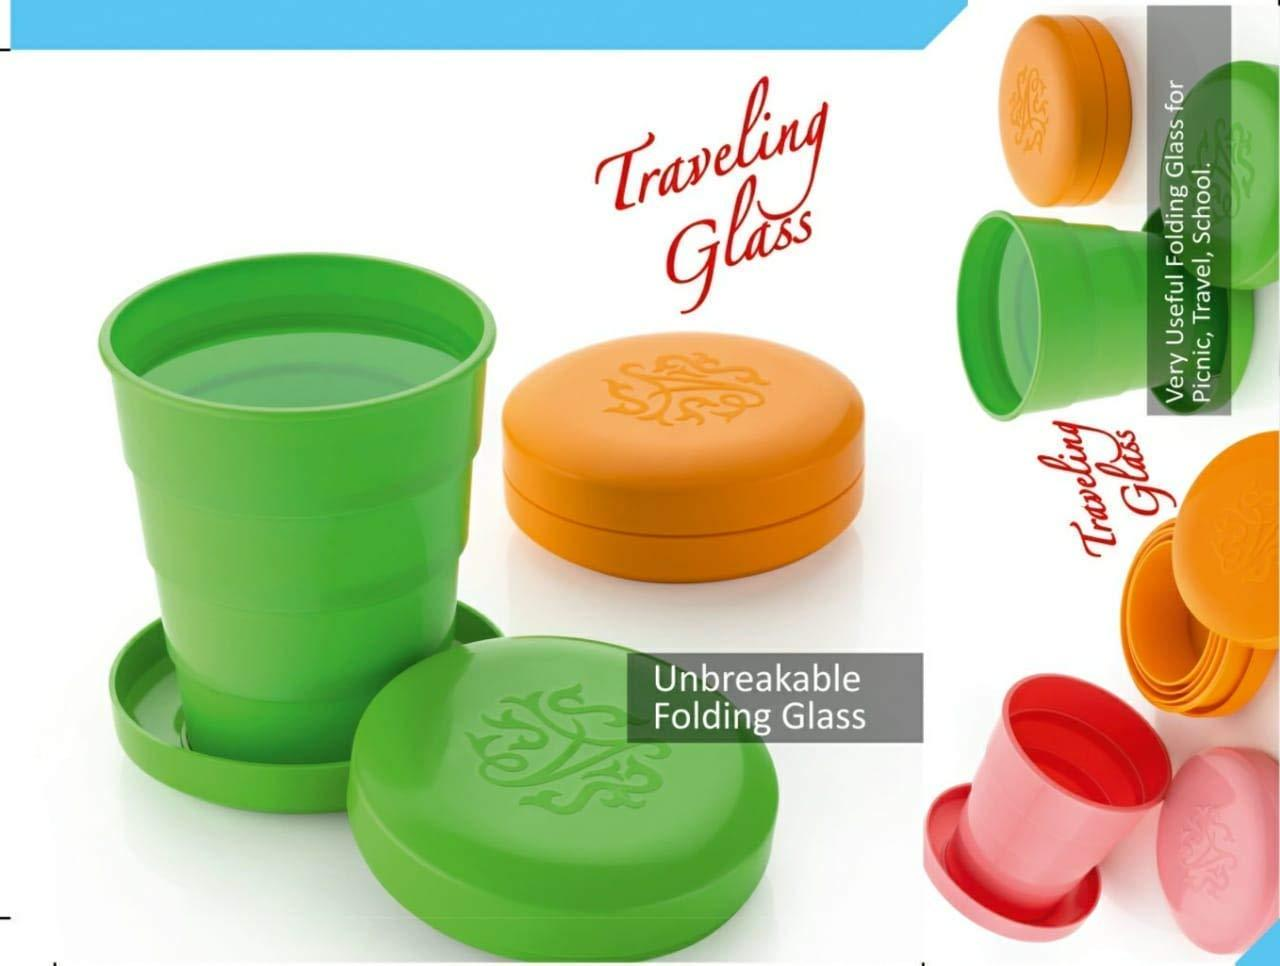 Portable Travelling Cup/Tumbler With Lid